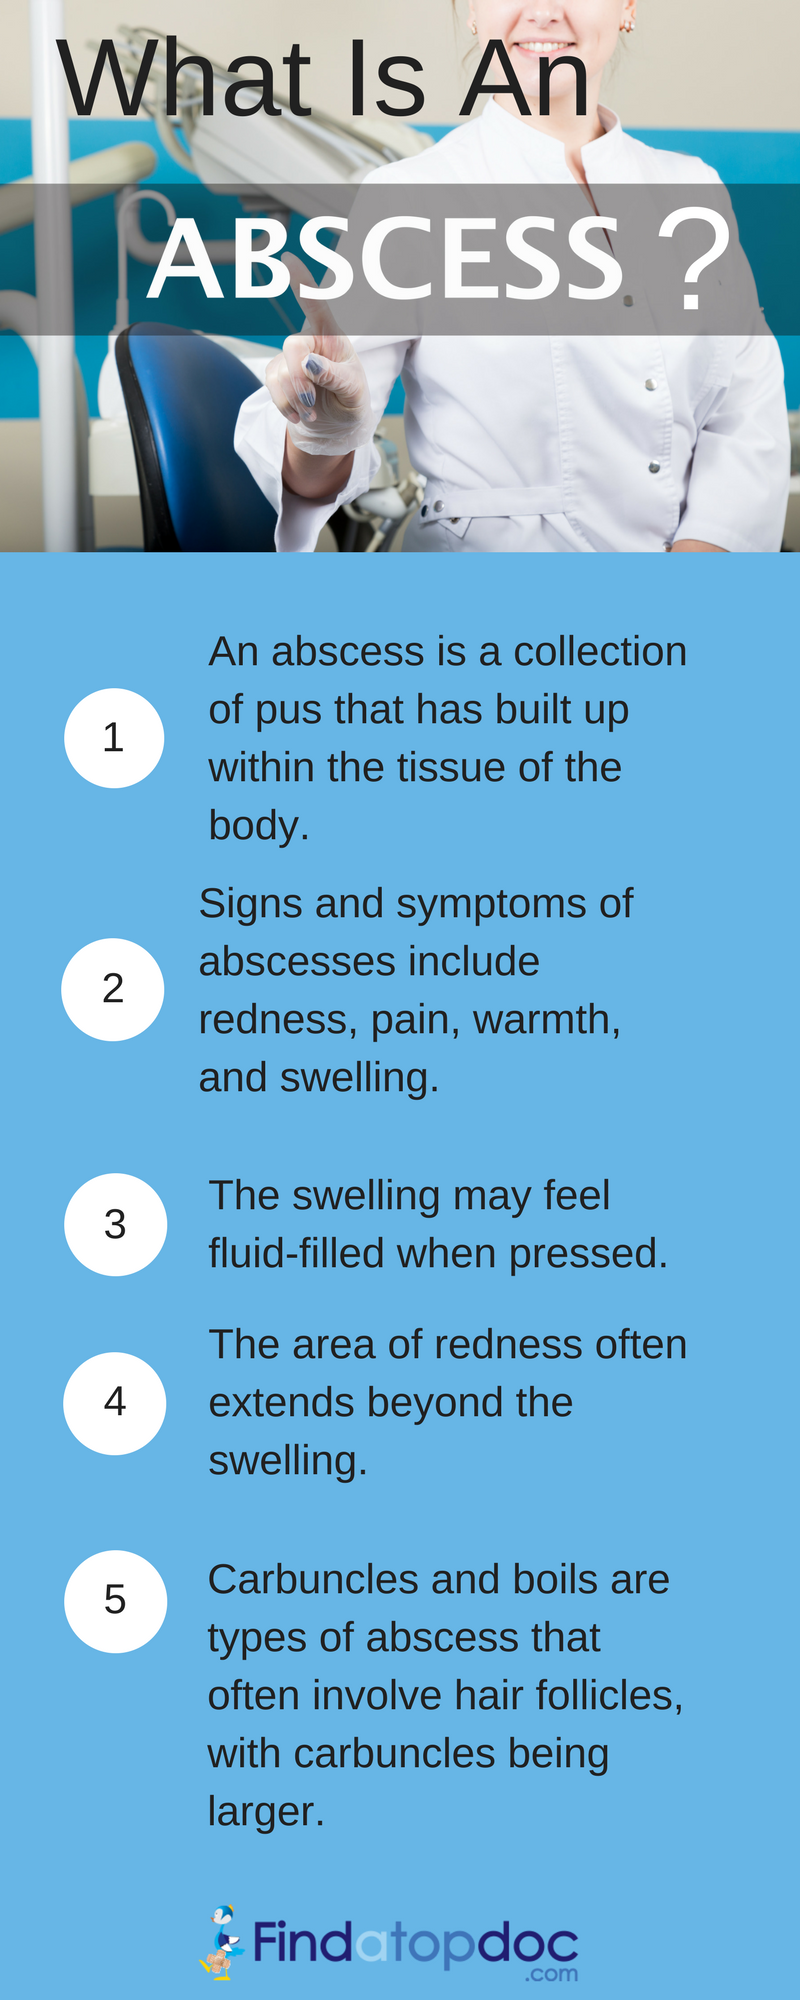 What is an Abscess? How to Get Rid of an Abscess?